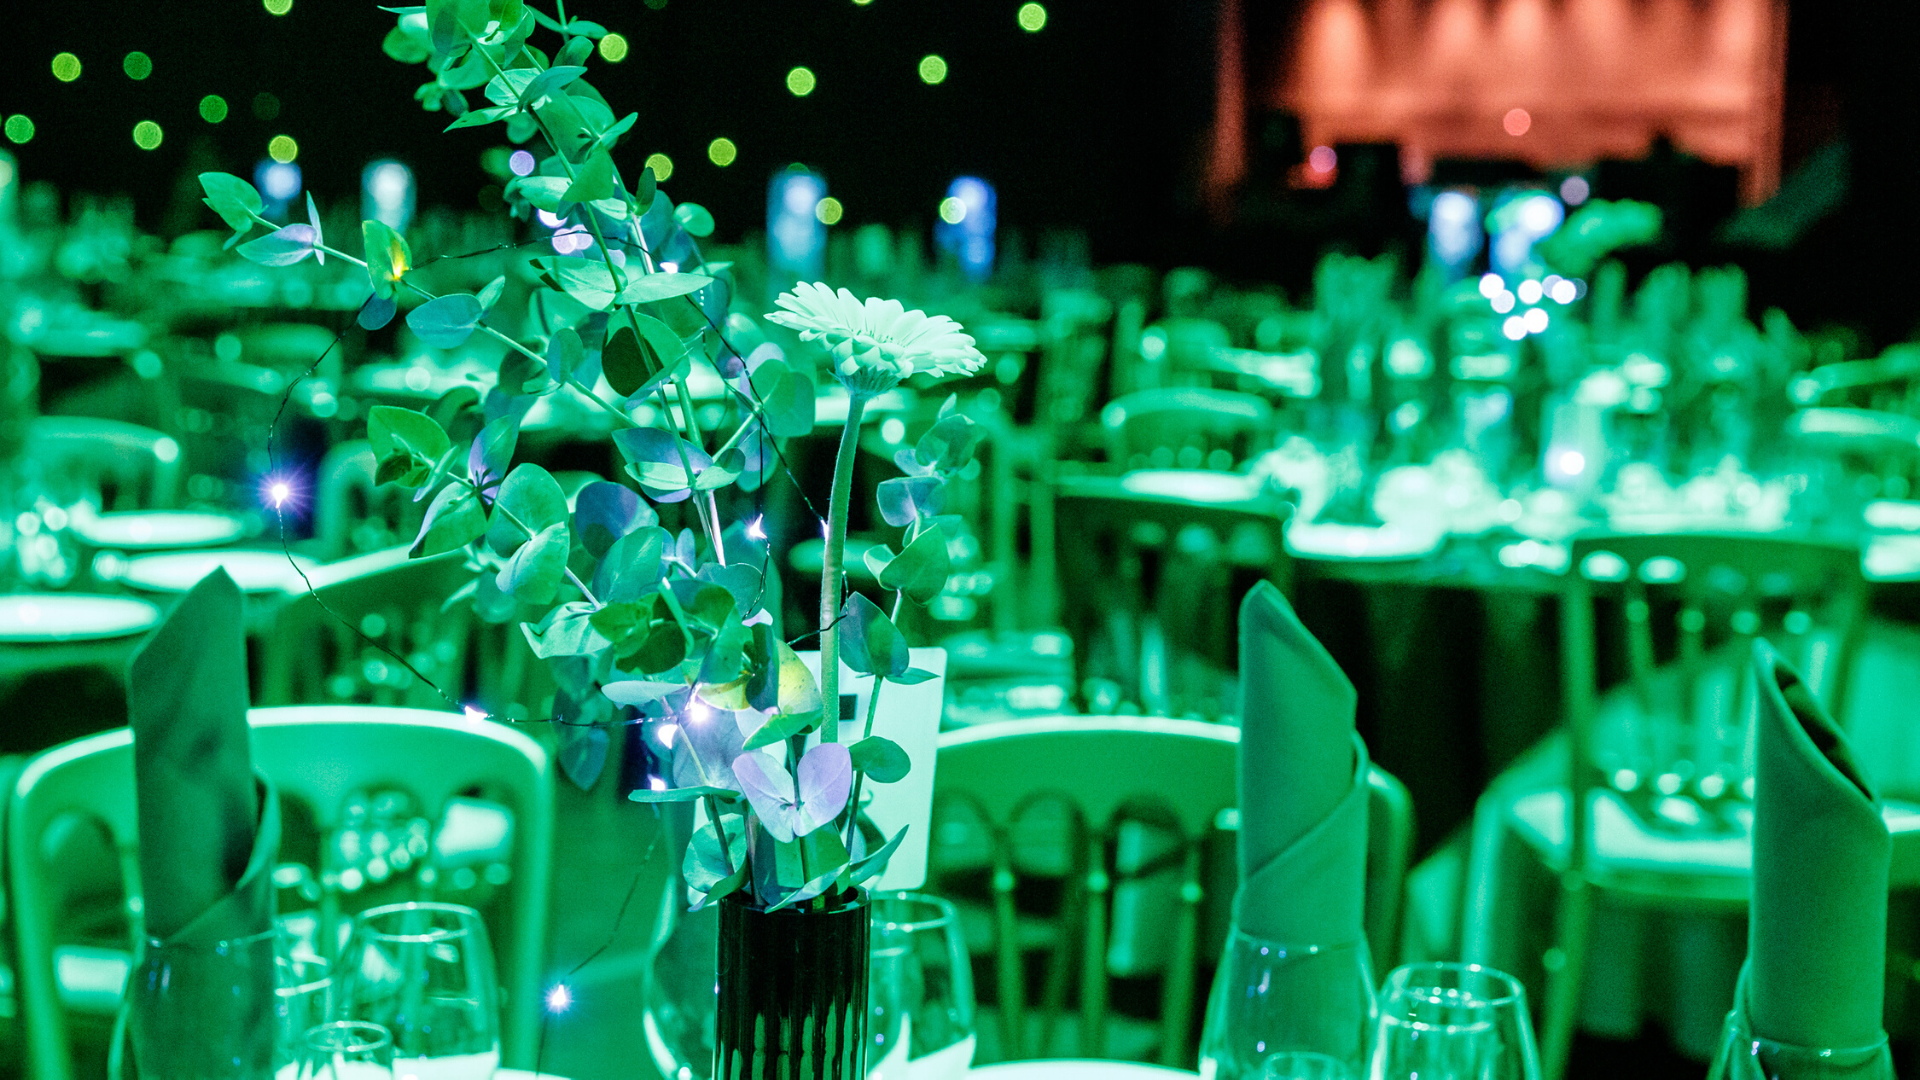 https://www.semlepgrowthhub.com/wp-content/uploads/2020/07/Northamptonshire-Food-and-Drink-awards.png